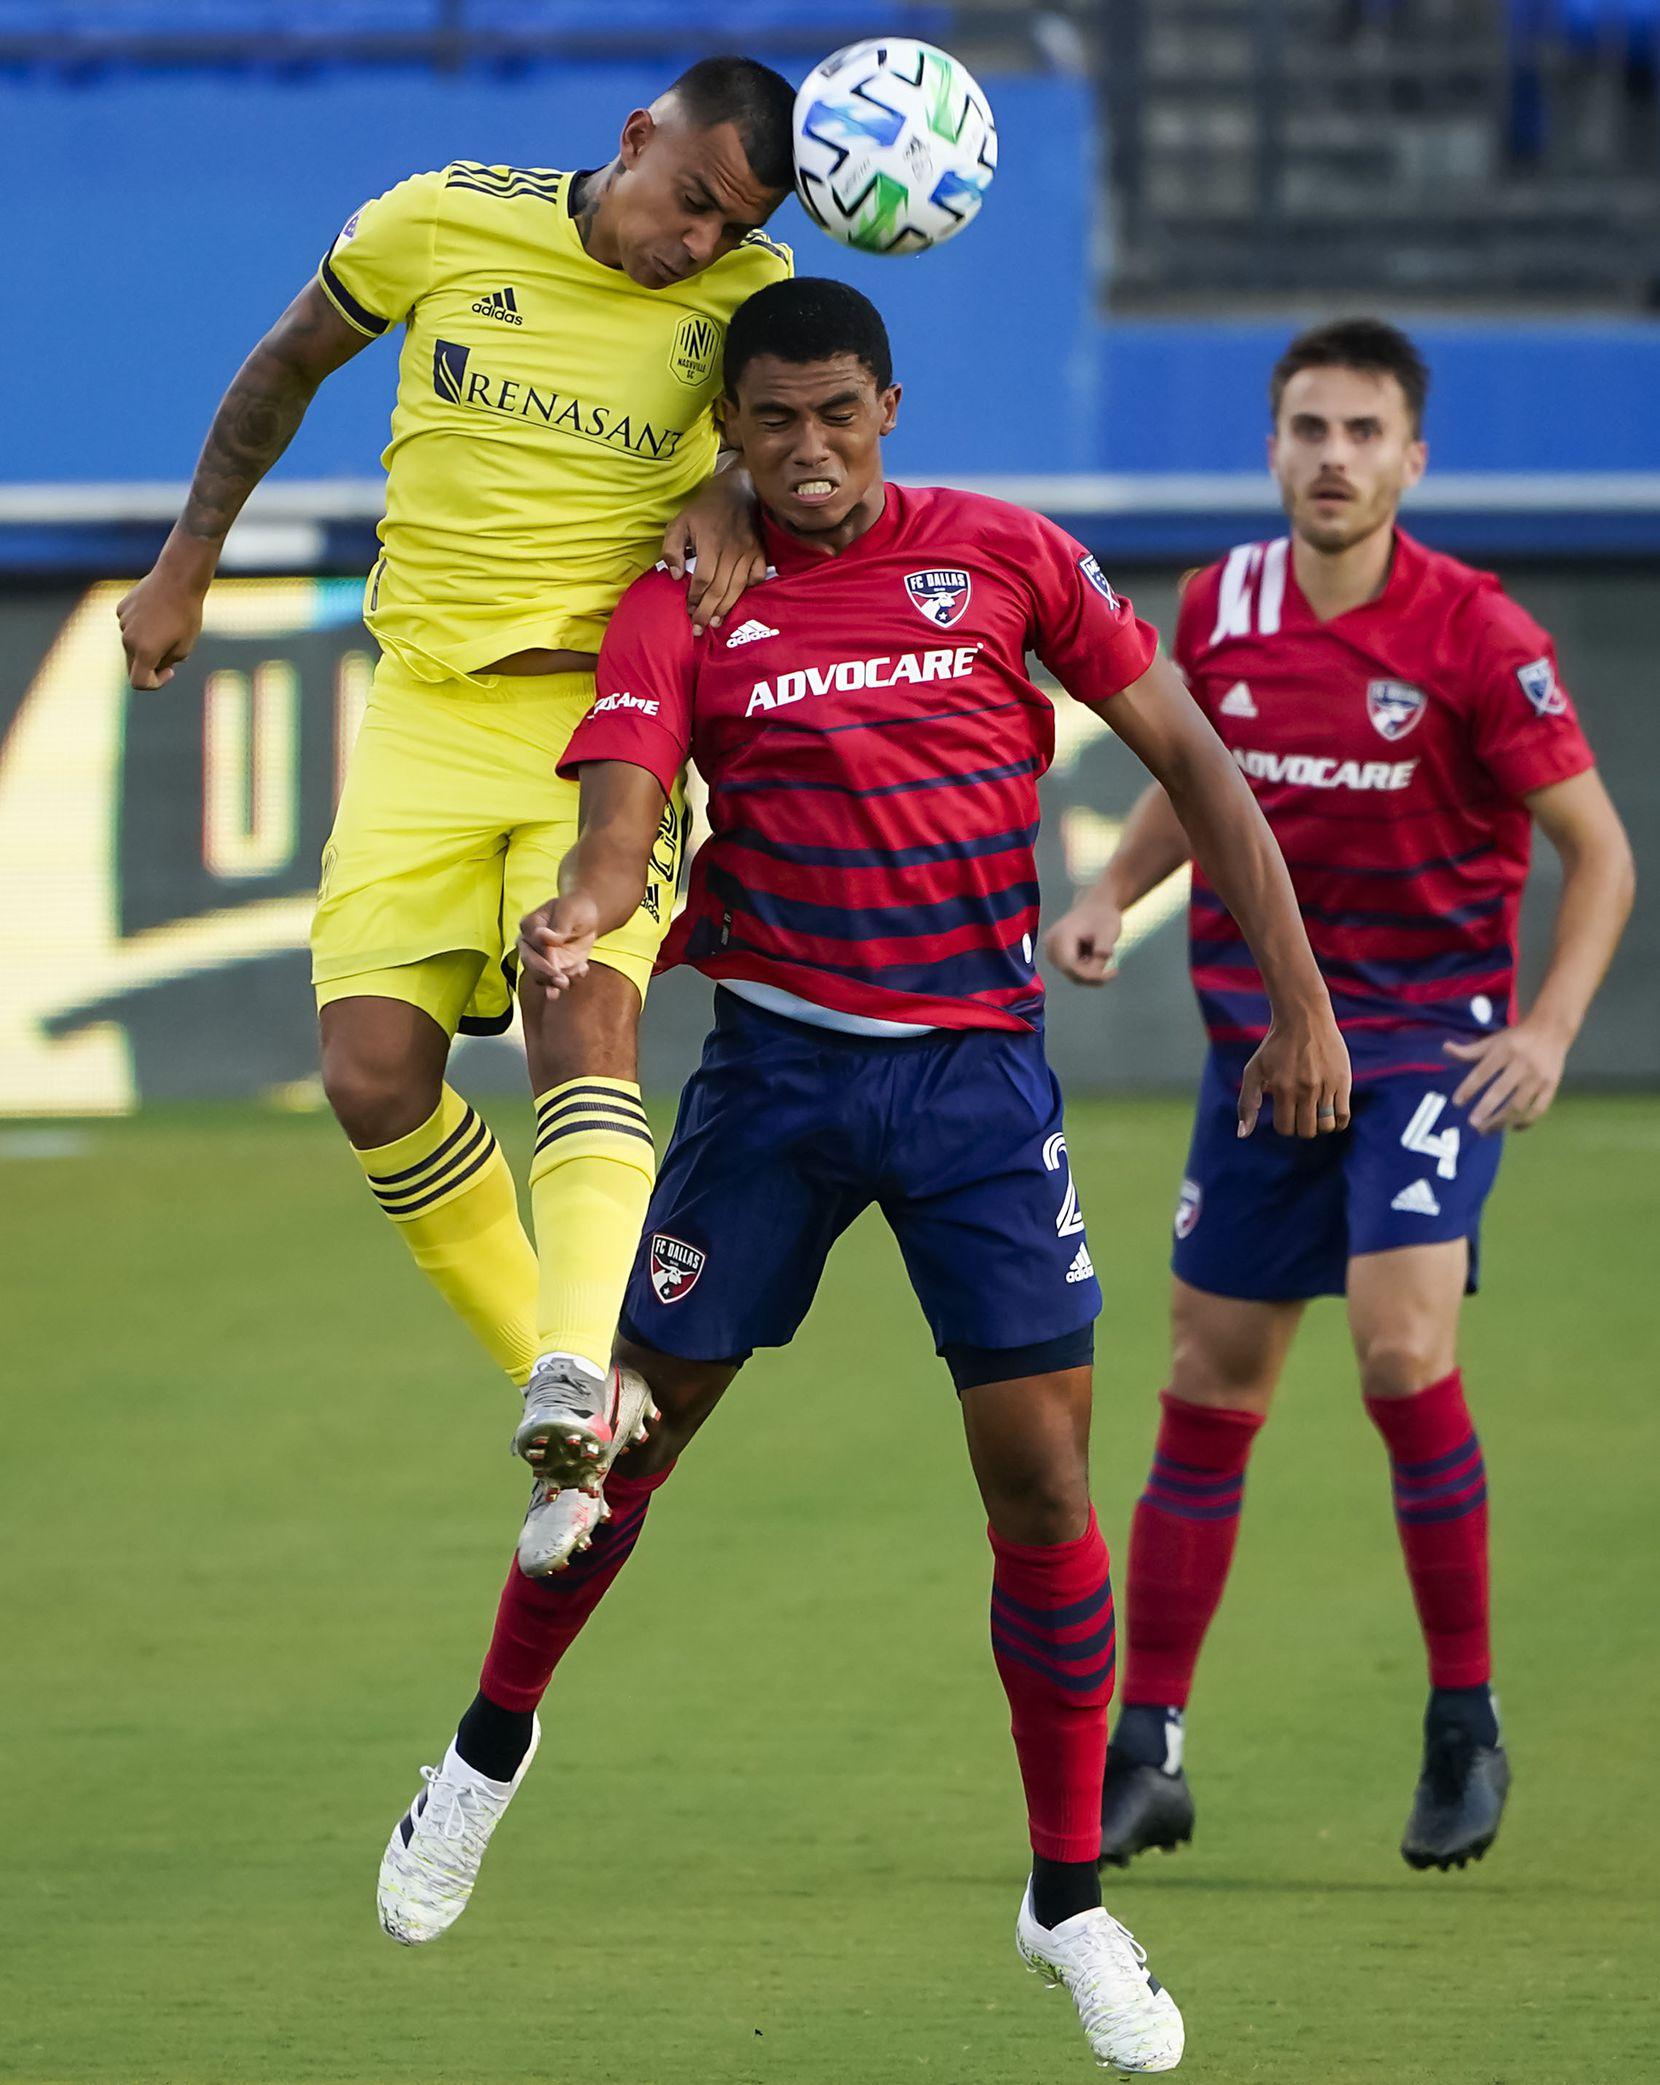 FC Dallas defender Reggie Cannon (2) fights for a header against Nashville SC midfielder Randall Leal (8) during the first half of an MLS soccer game at Toyota Stadium on Wednesday, Aug. 12, 2020, in Frisco, Texas. (Smiley N. Pool/The Dallas Morning News)